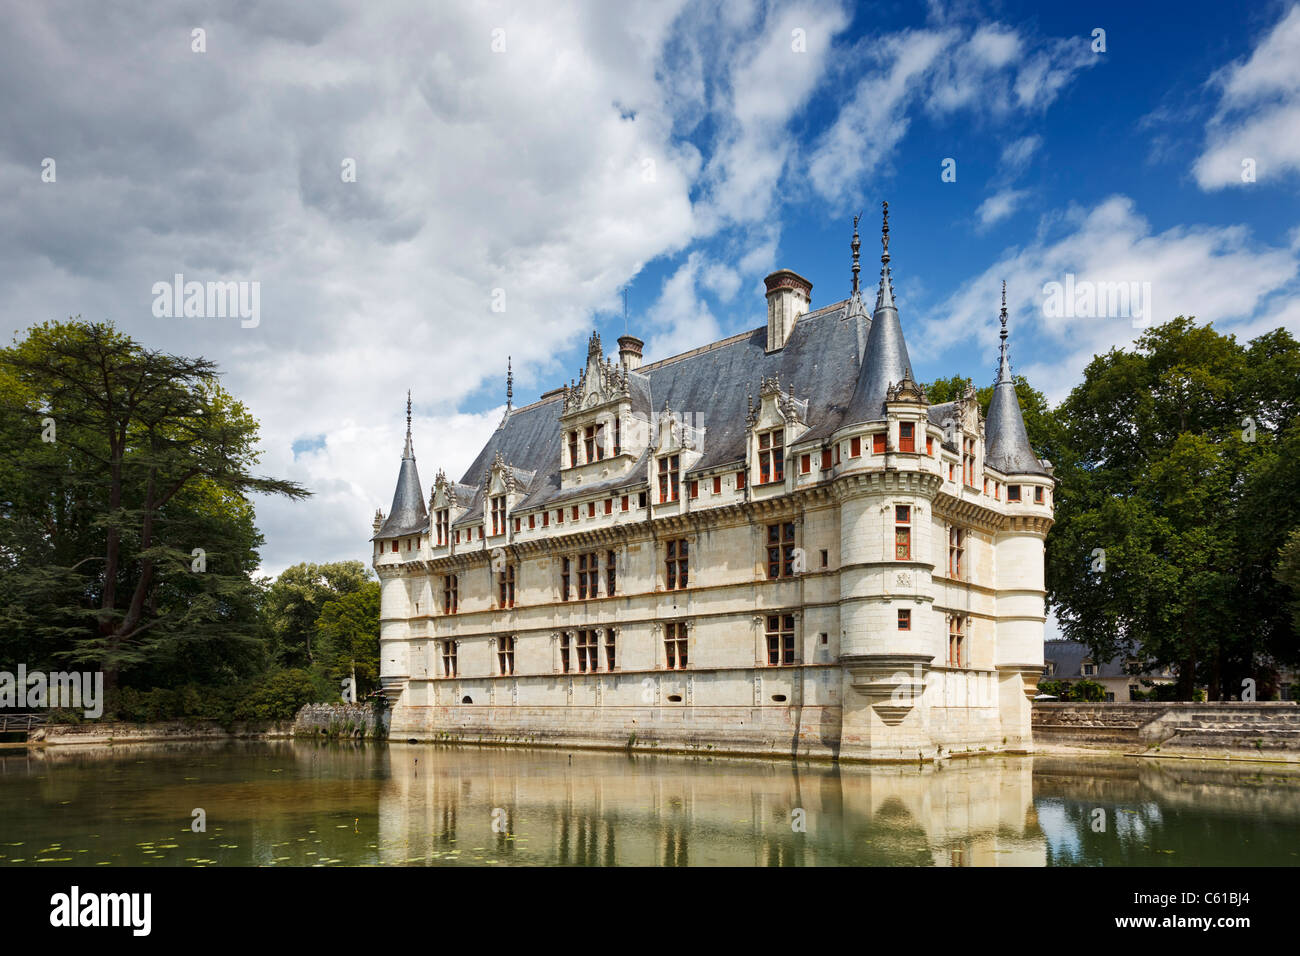 Chateau at Azay le Rideau, Indre et Loire, France, Europe - Stock Image